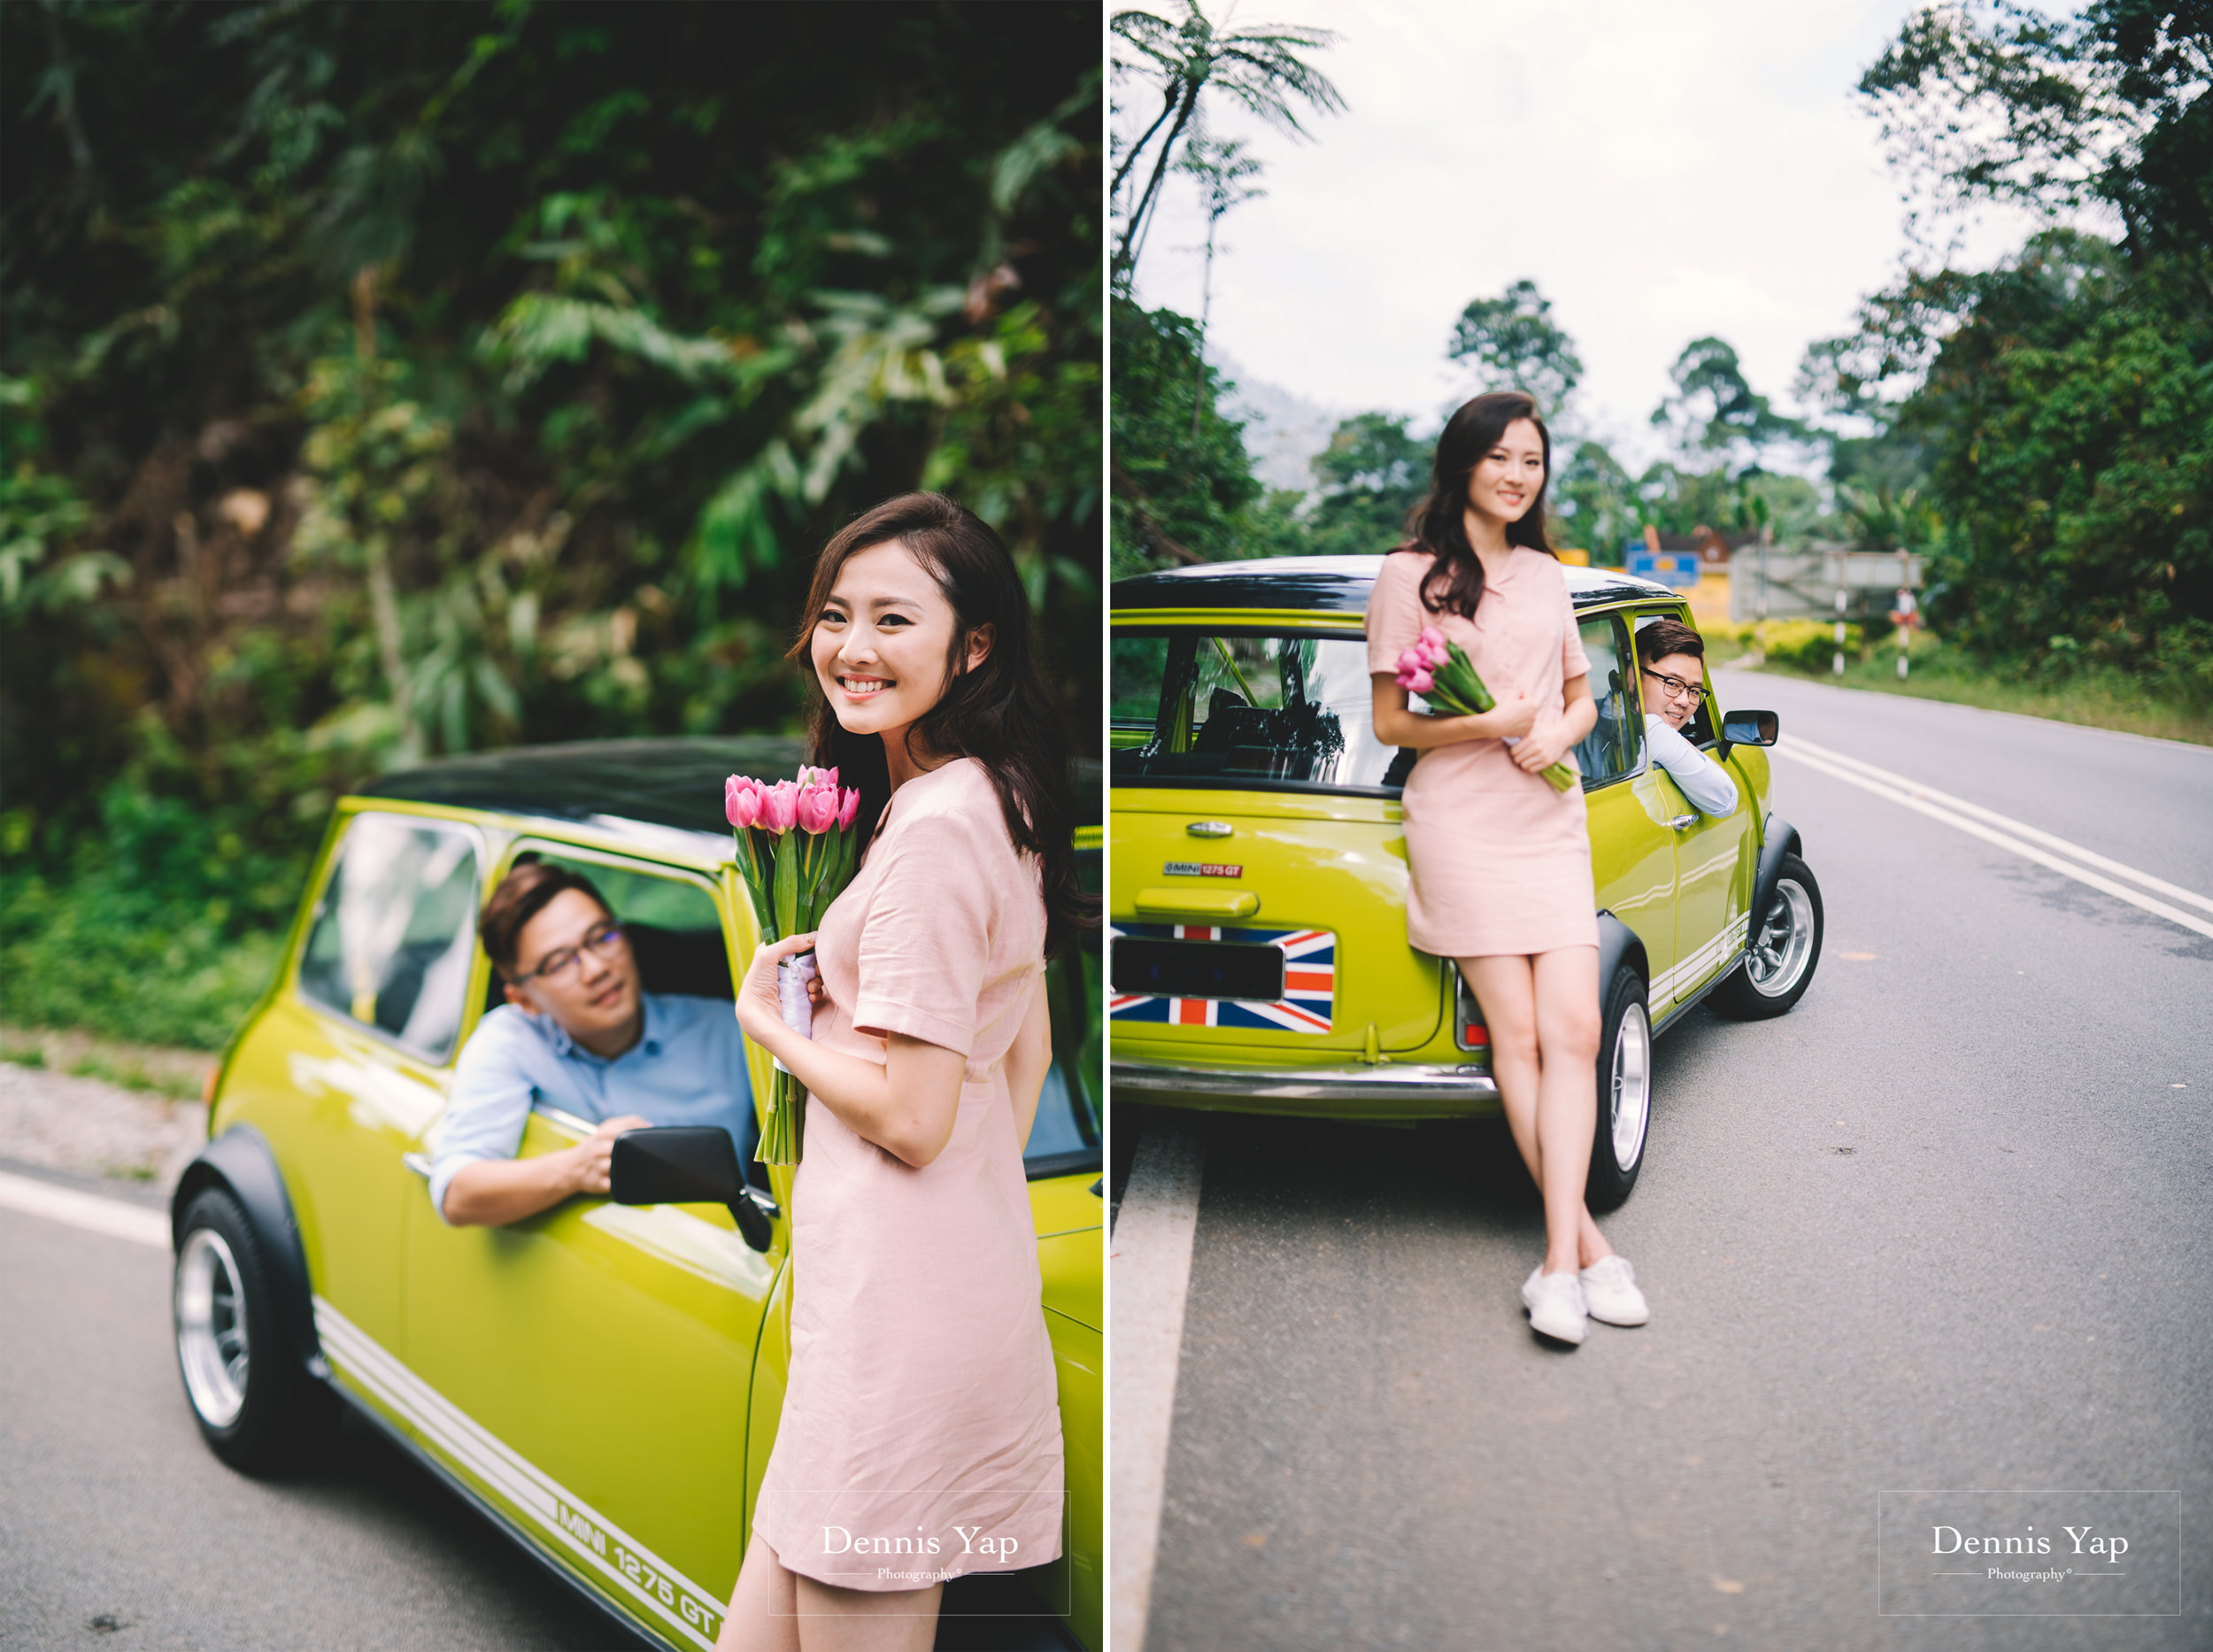 steven ching pre wedding hulu langat namwah road background beloved lookout point dennis yap photography malaysia top photographer-18.jpg